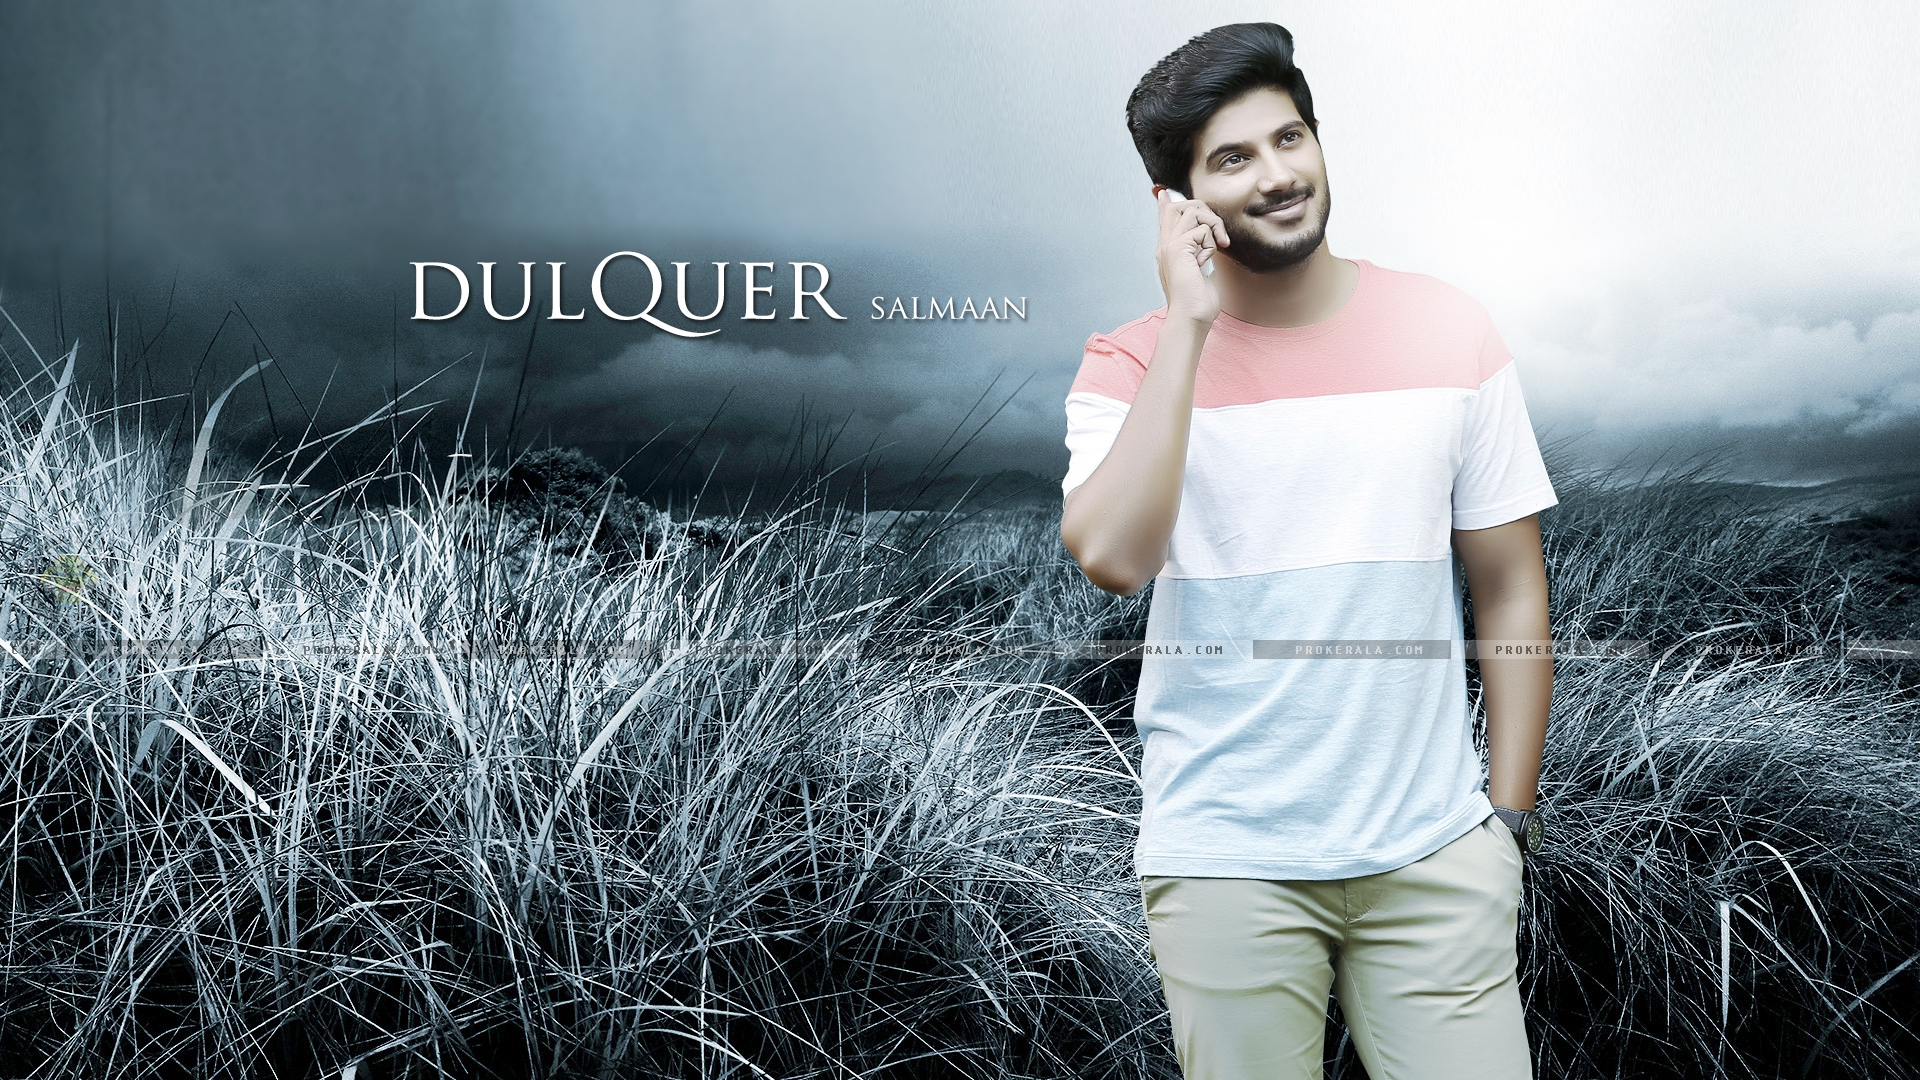 Malayalam Actor Dulquer Salmaan New Movie Wallpapers